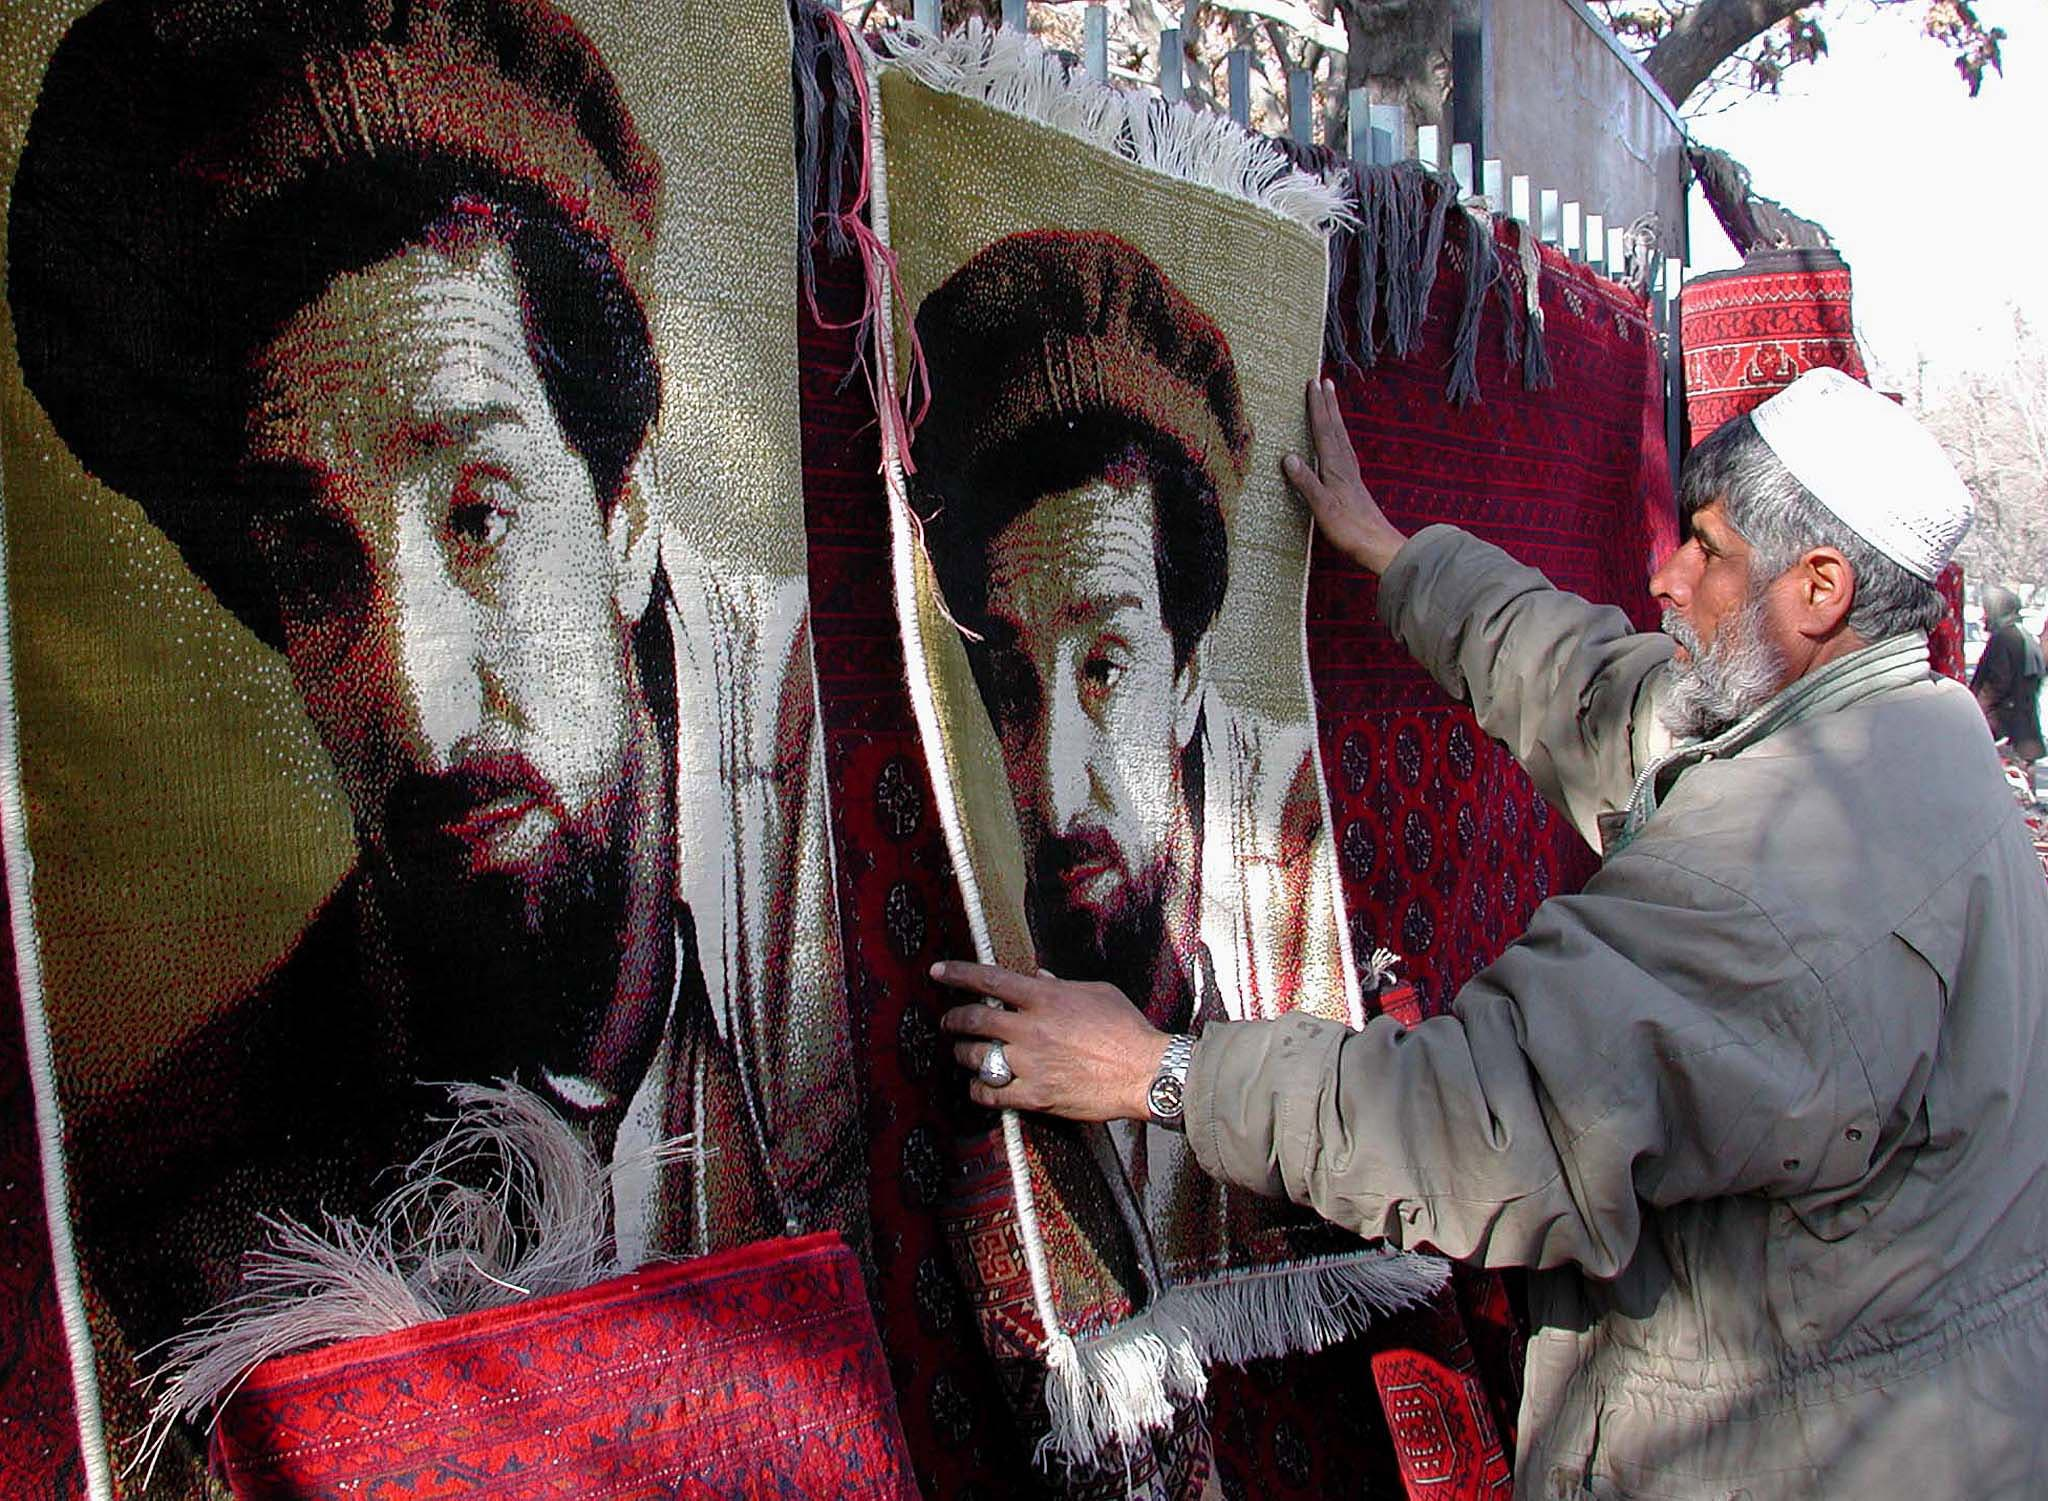 An Afghan man sells carpets with the picture of assassinated Northern Alliance leader Ahmad Shah Massoud on them in a Kabul market on January 24, 2002. (Reuters)